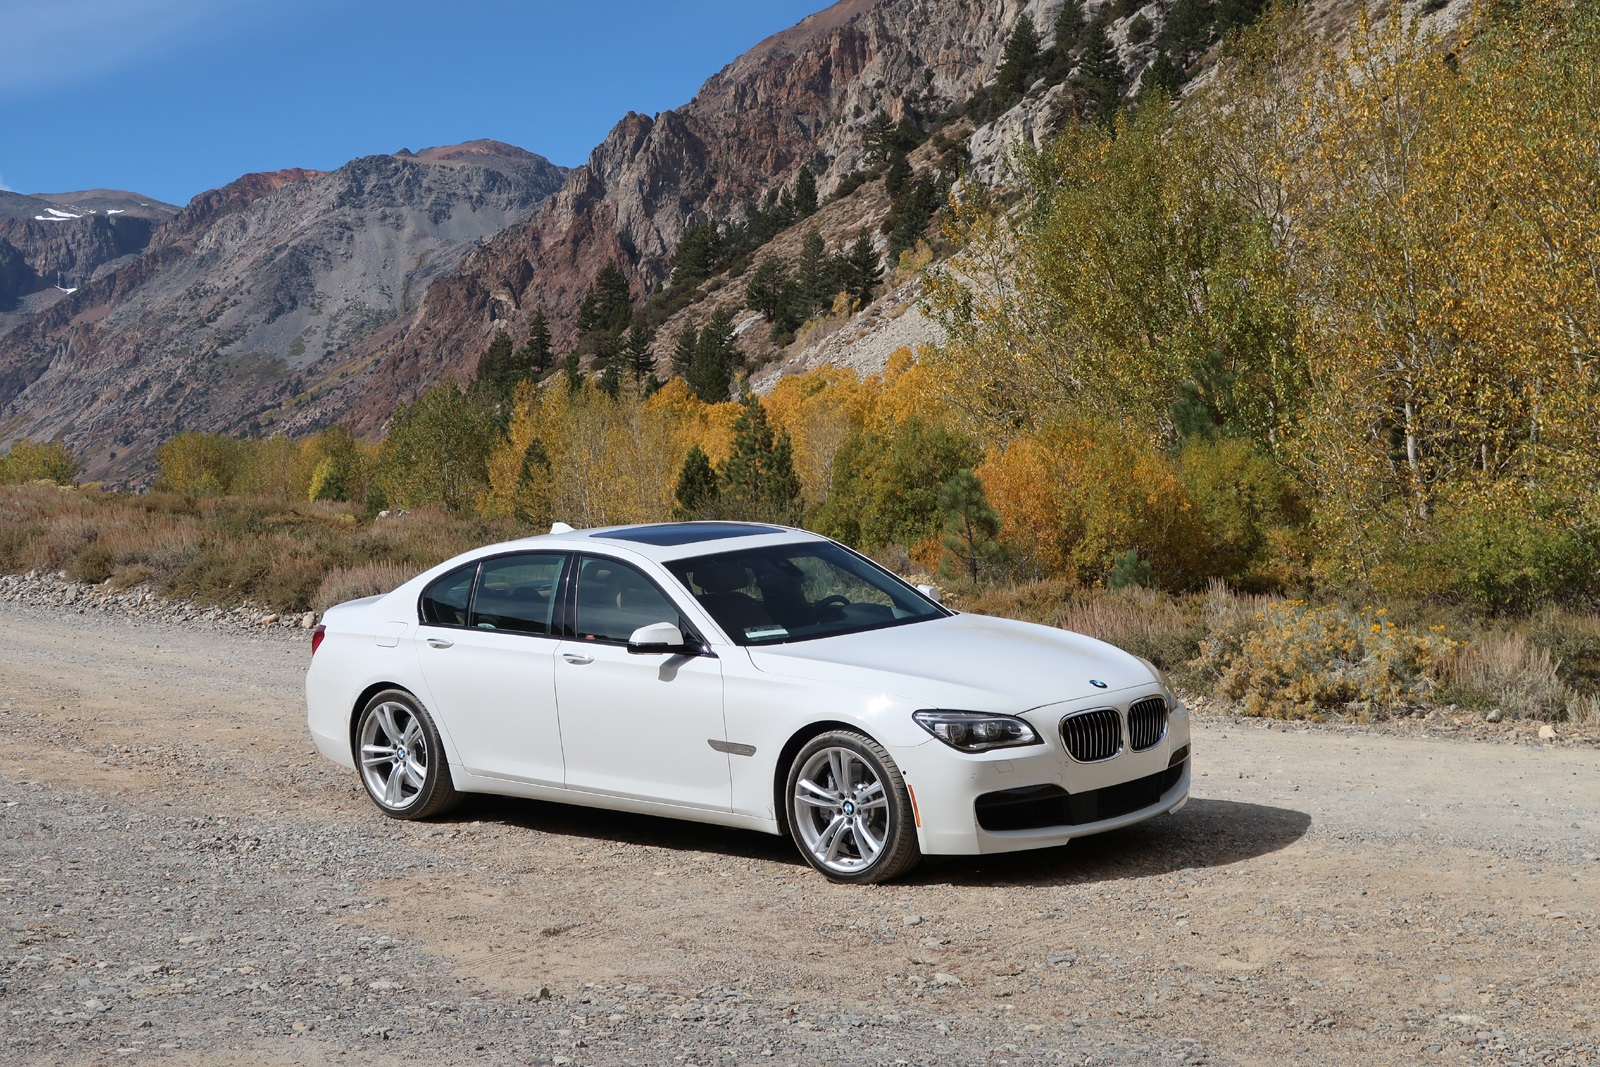 2015_bmw_750i_mammoth_roadtrip_6